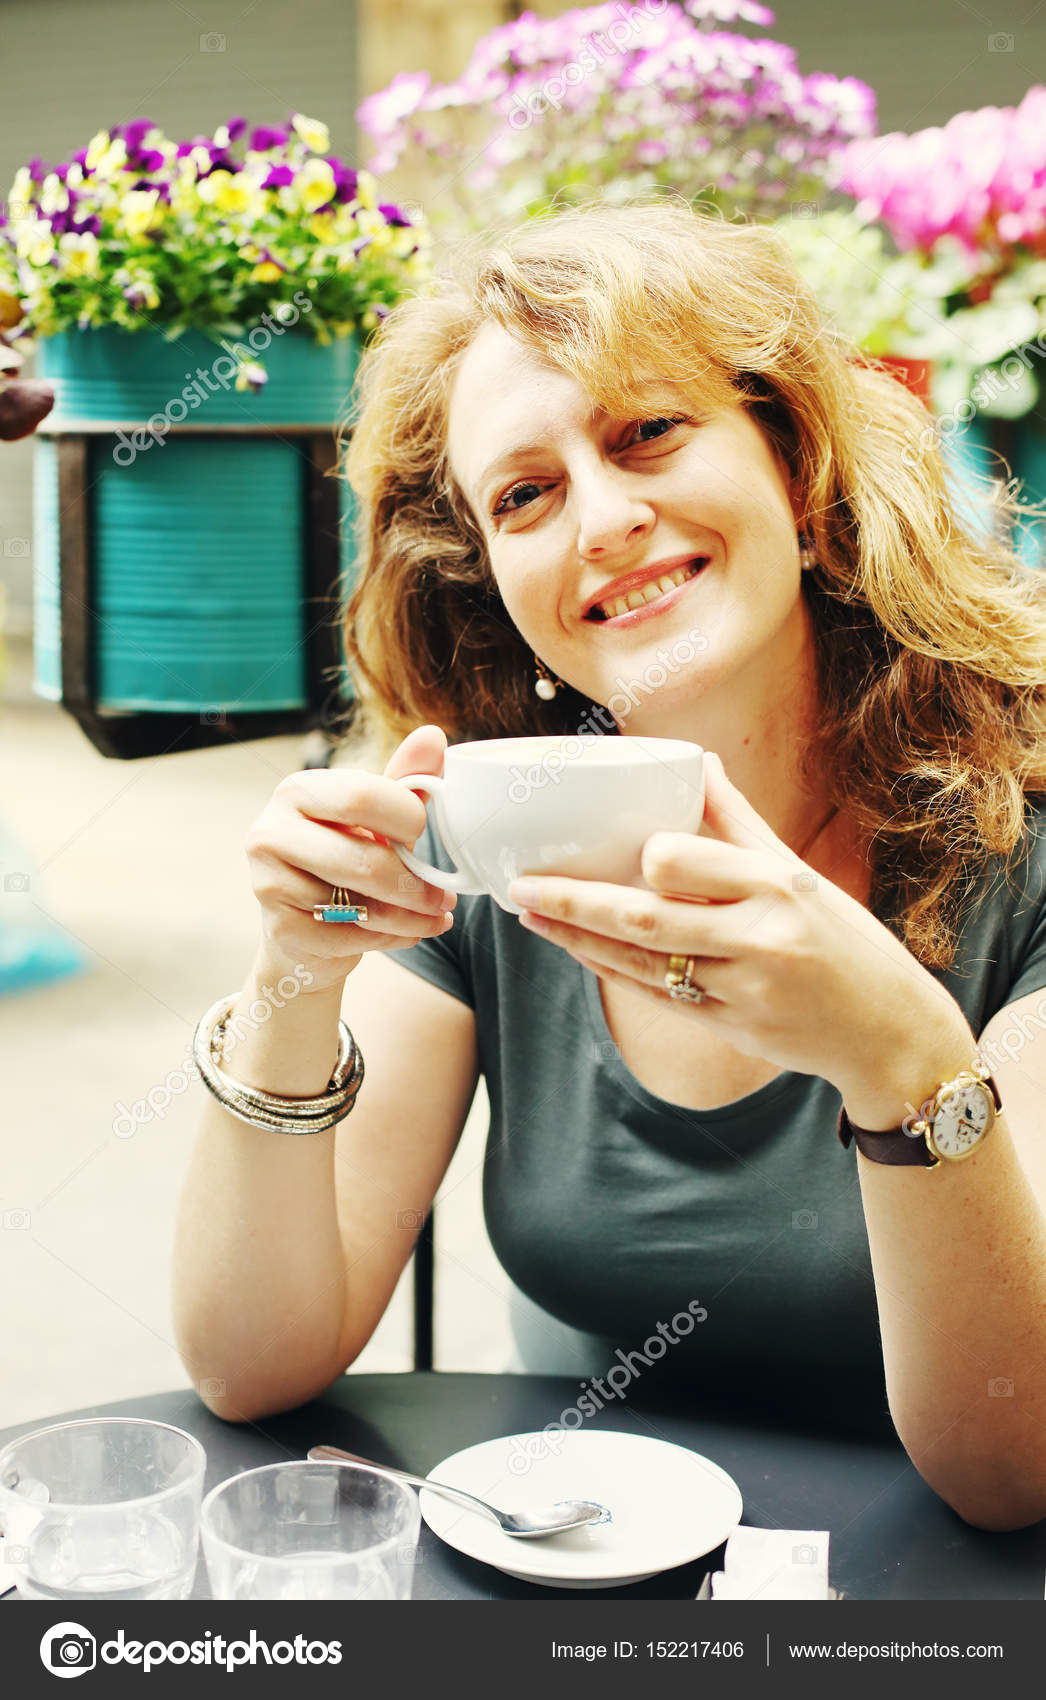 mature woman sitting in outdoor cafe — stock photo © dubova #152217406